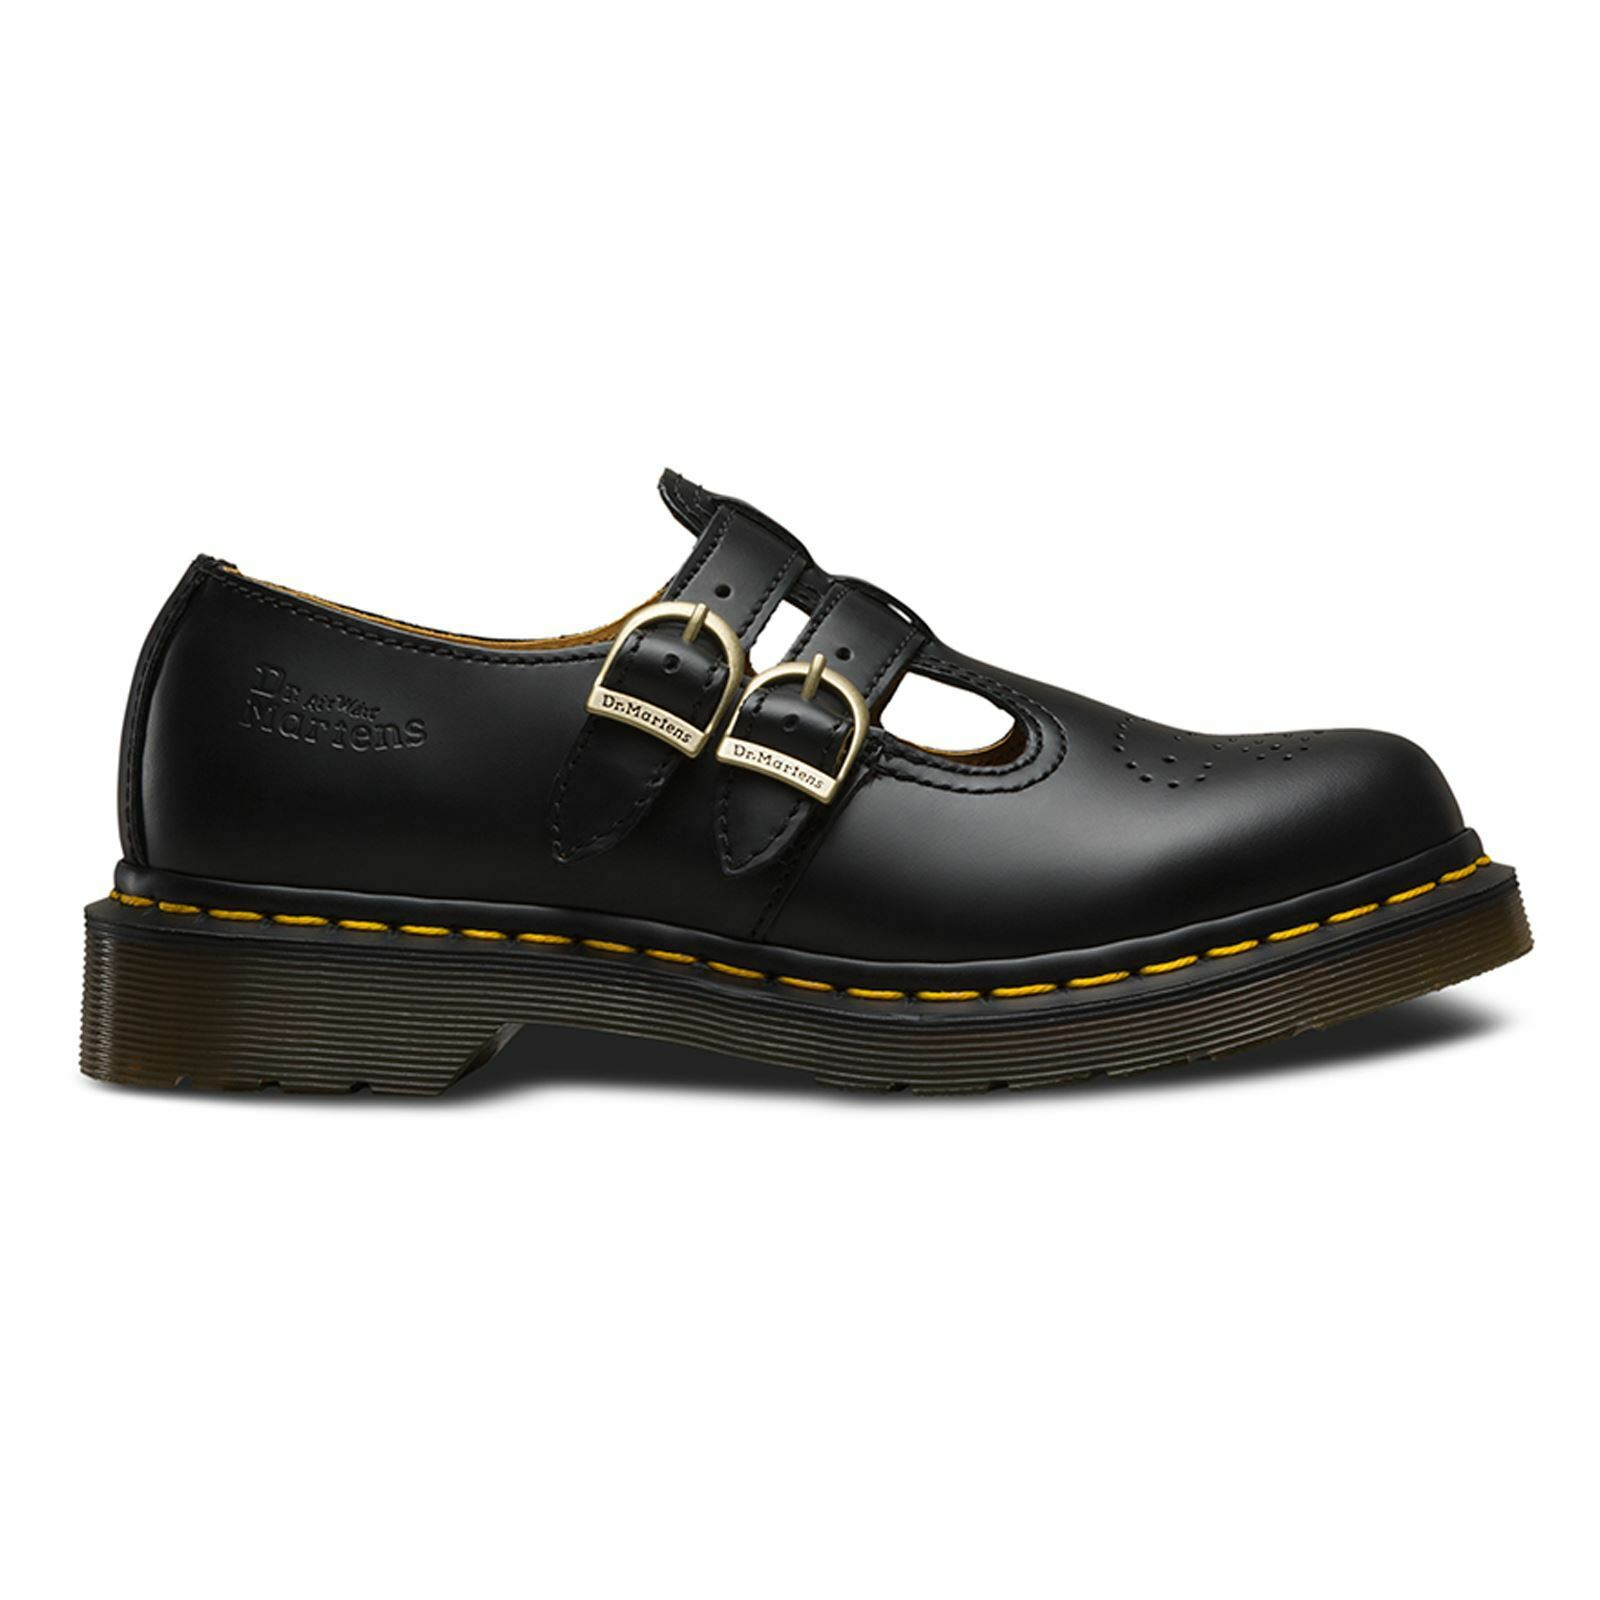 Dr. martens 8065 mary jane noir chaussures pointure